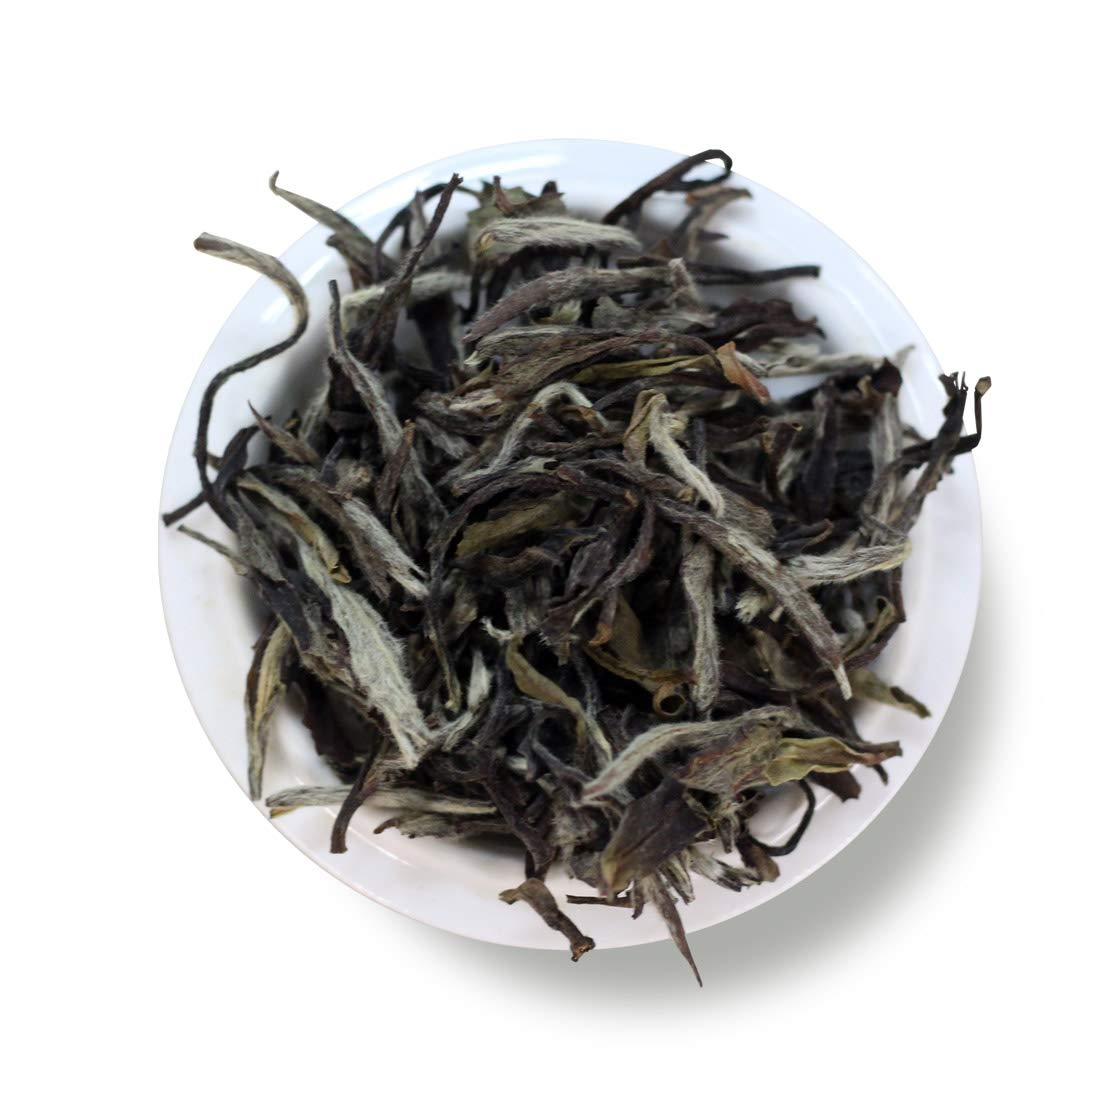 Field to Cup, April 2019 Release, 3oz (85g), Premium White Tea Organic Water Sprite, Oolong Tea, Loose Leaf by Field to Cup (Image #1)